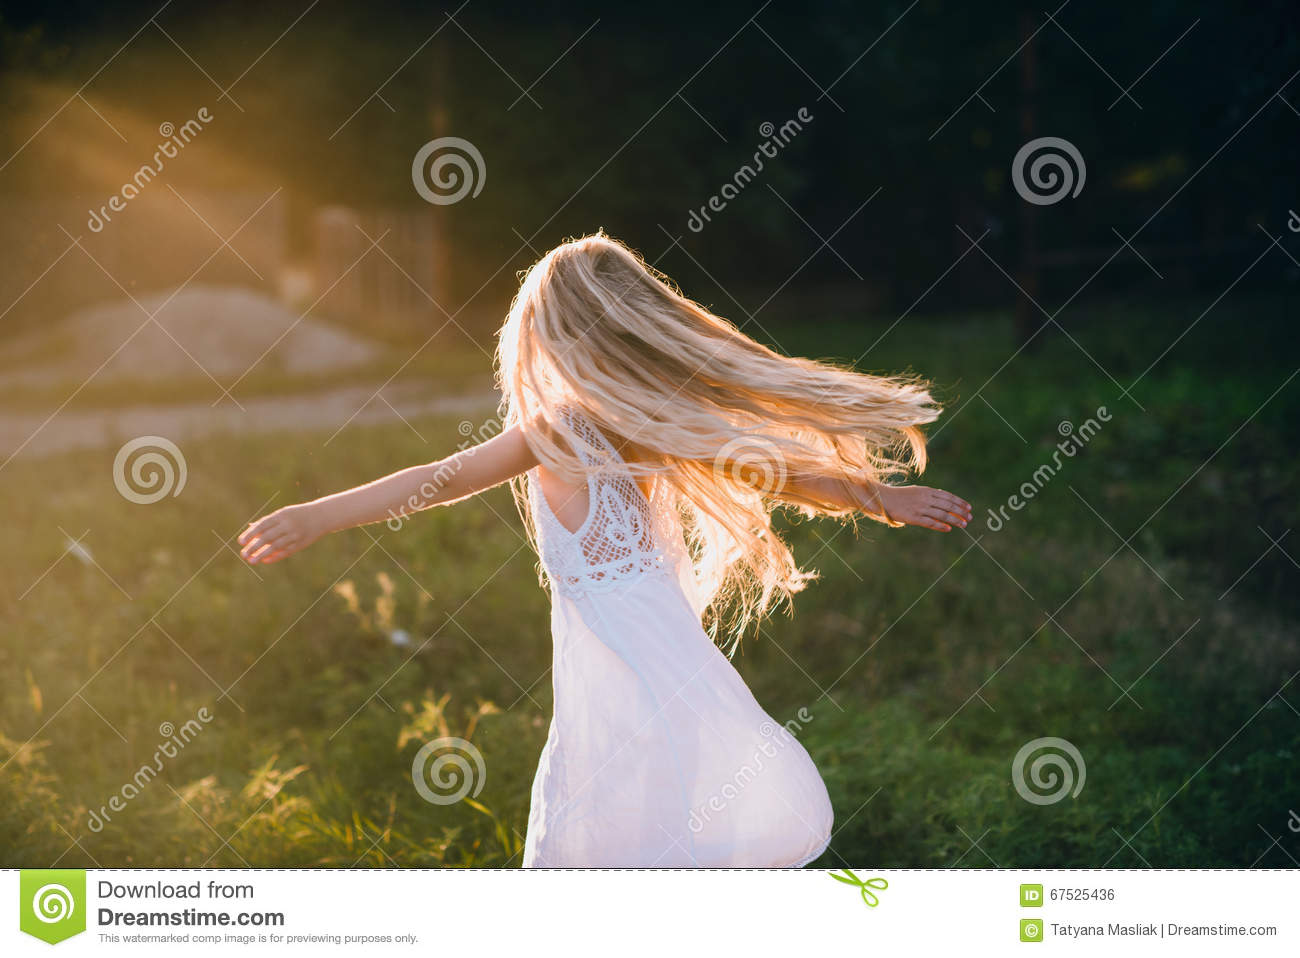 Download Portrait Of A Baby Girl Spinning In A Field In Sunset Light Stock Photo - Image of grass, hair: 67525436